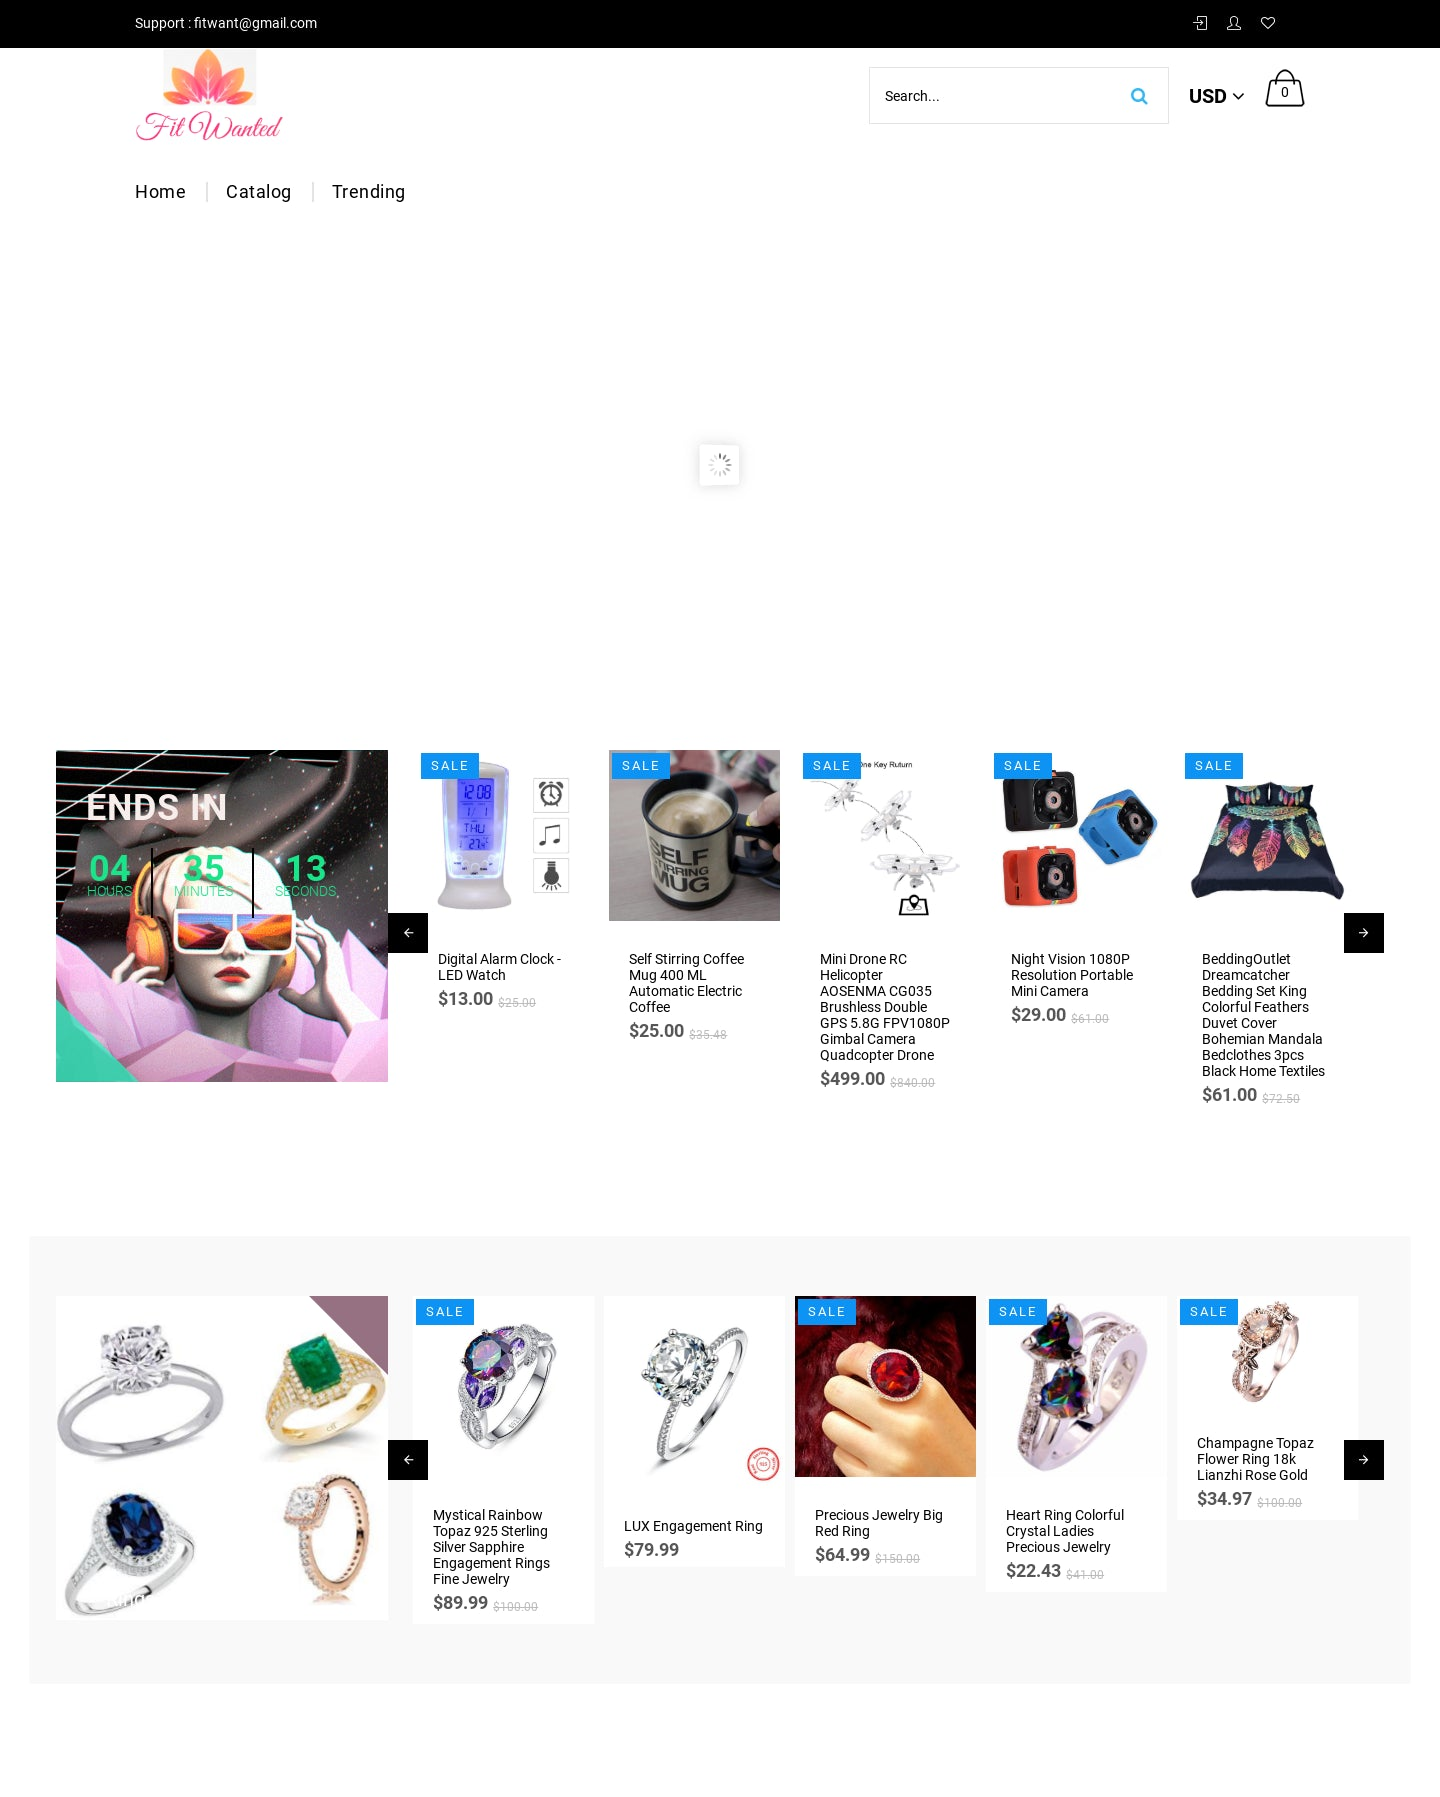 Fit Wanted Gym Luxury Gadgets Fit Sunglasses Ring Jewelry Cheap Store Screenshot - 5